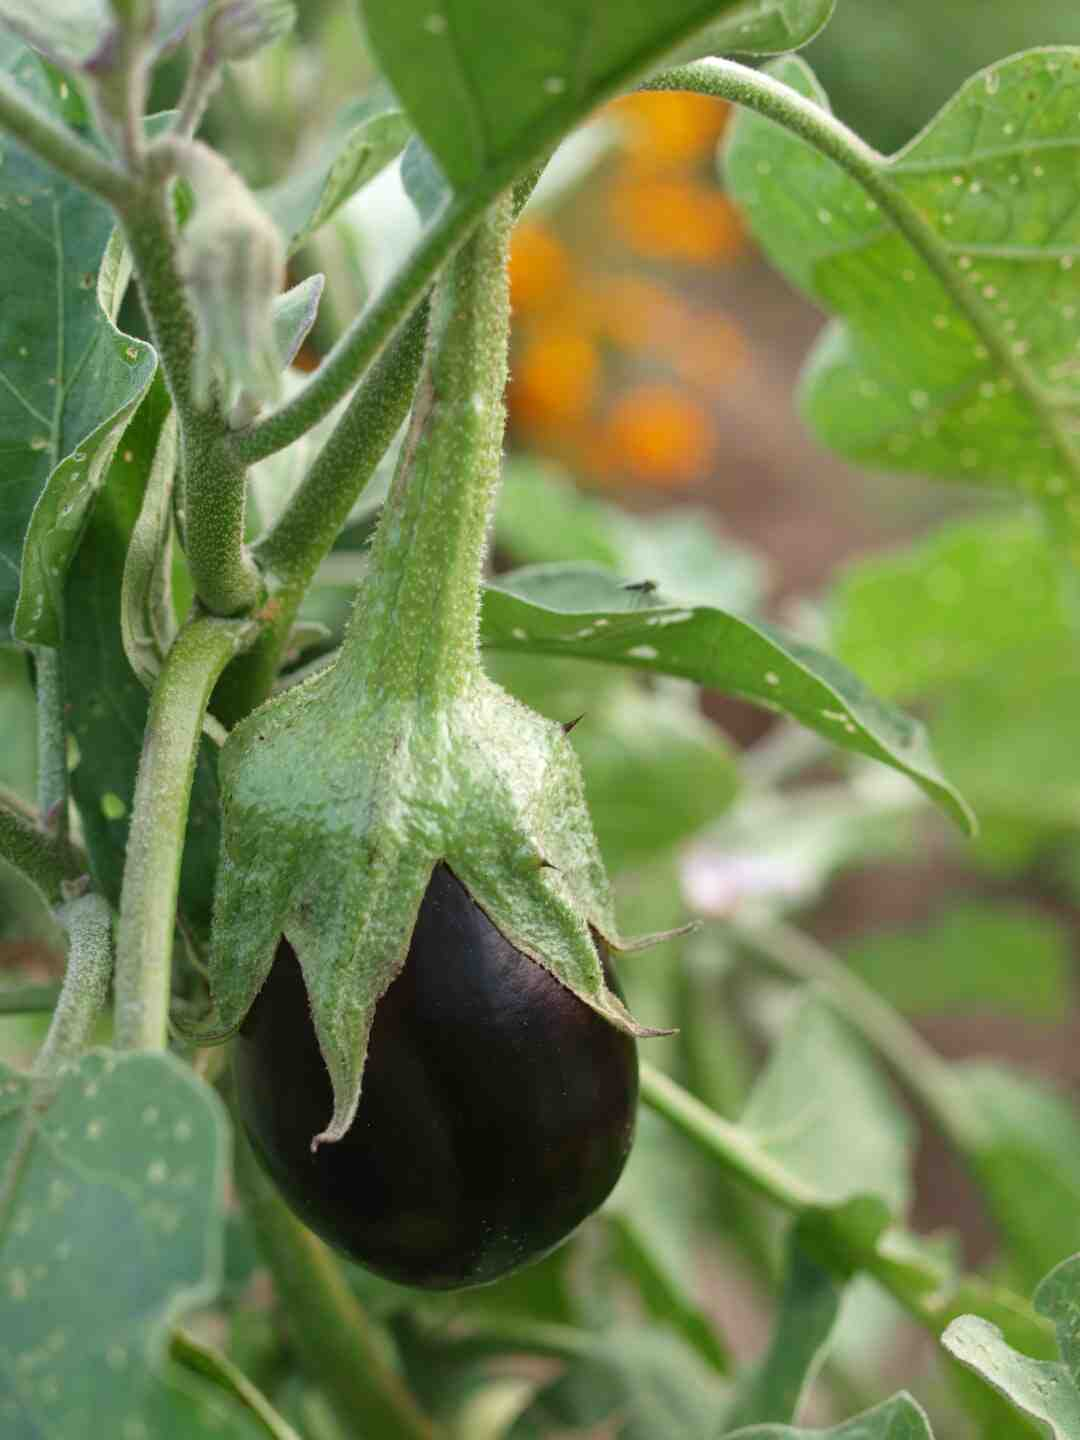 Comment consommer aubergine ?